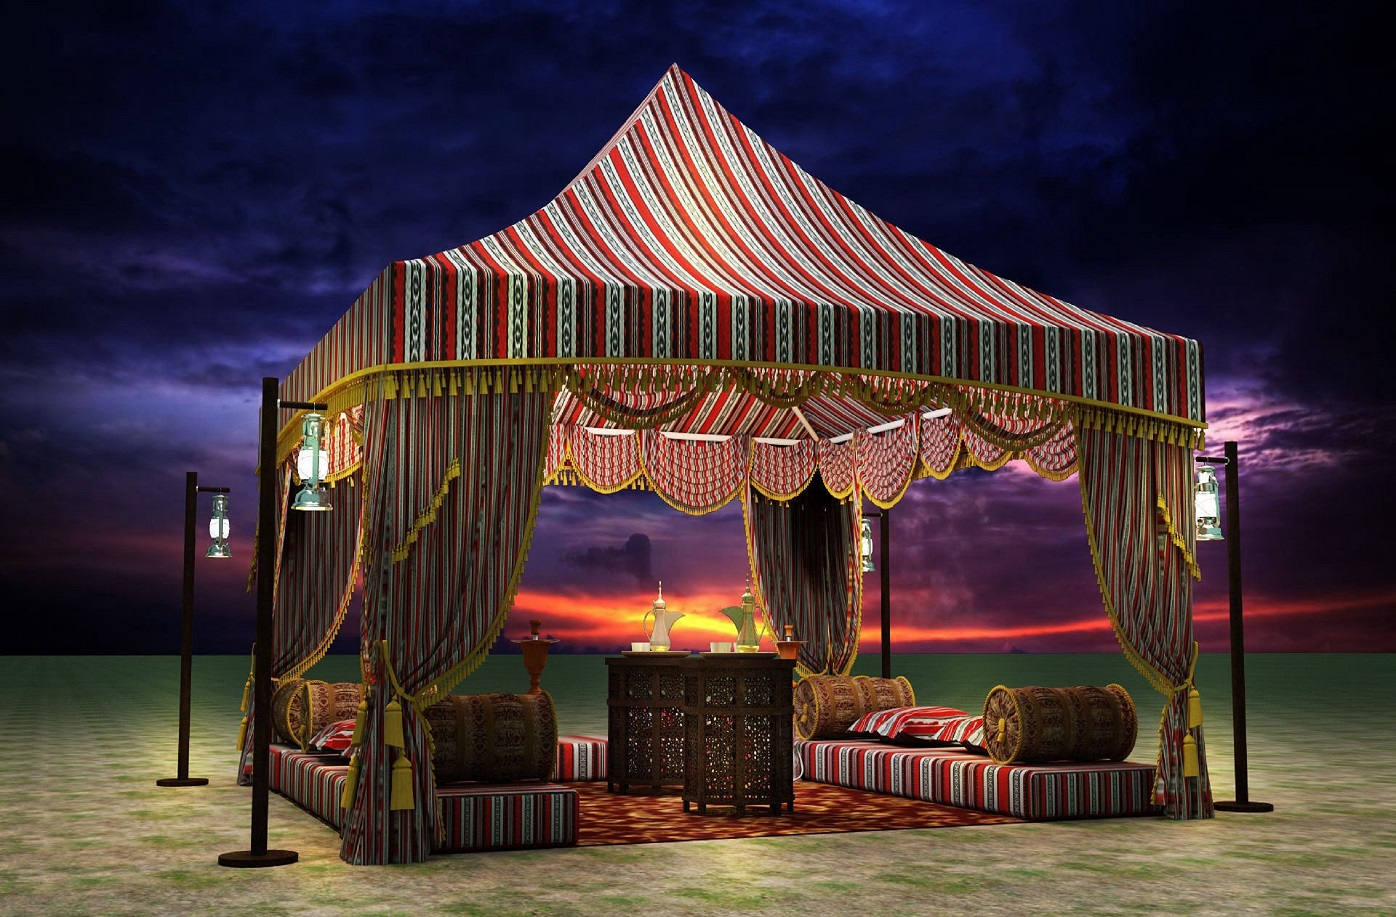 Tents and Awning | خيام و مظلات